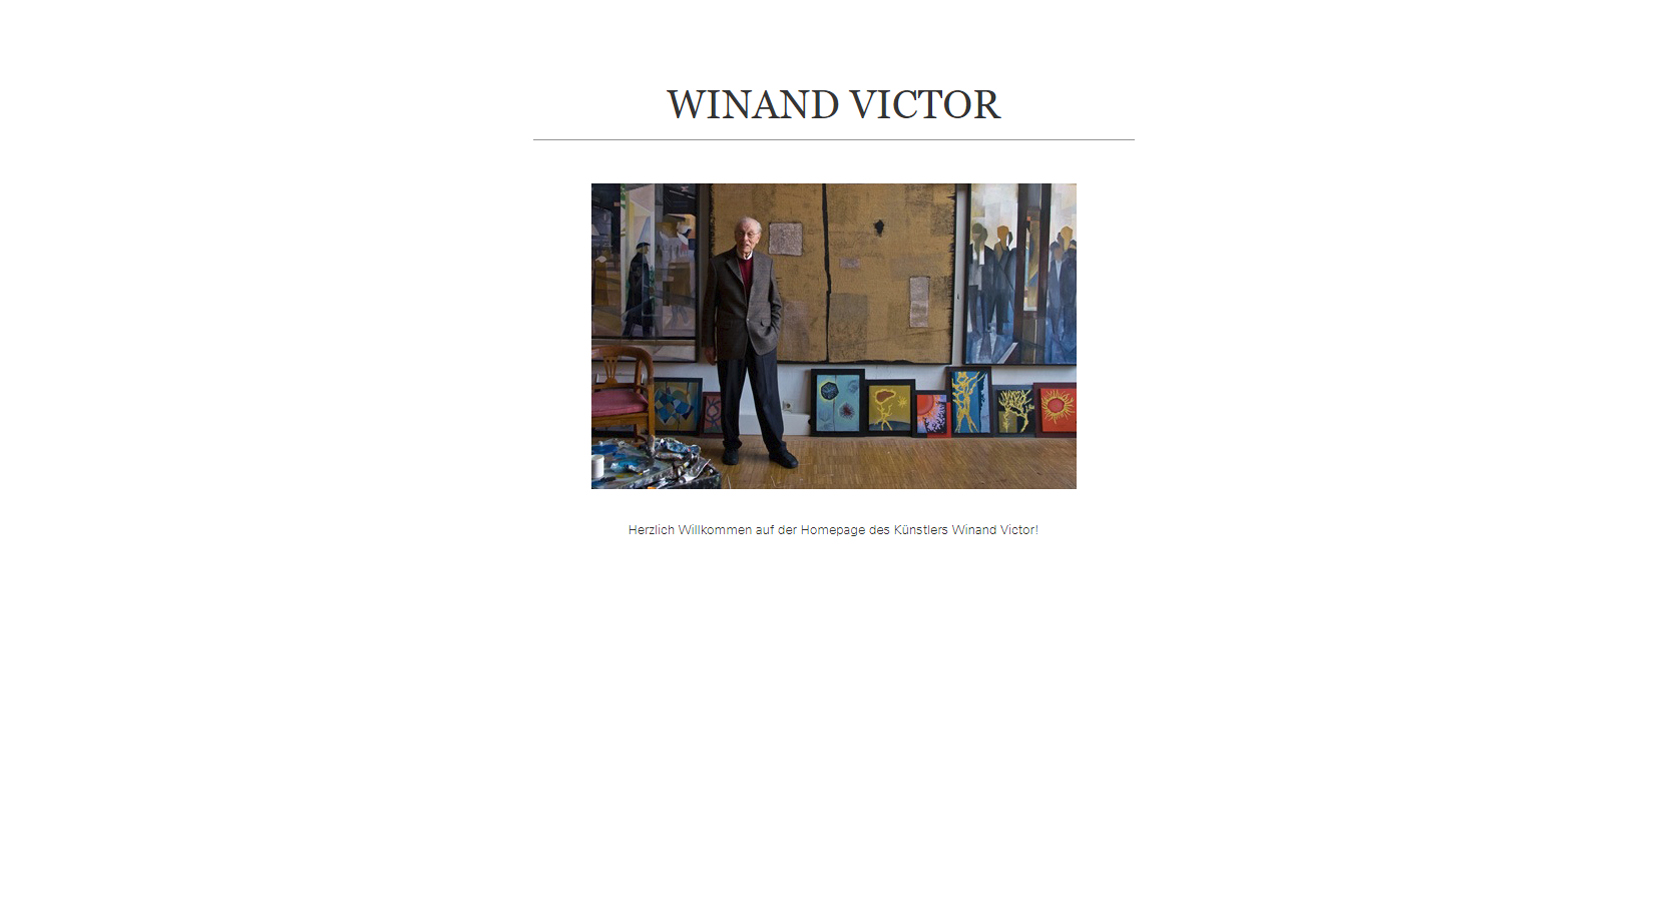 Winand Victor